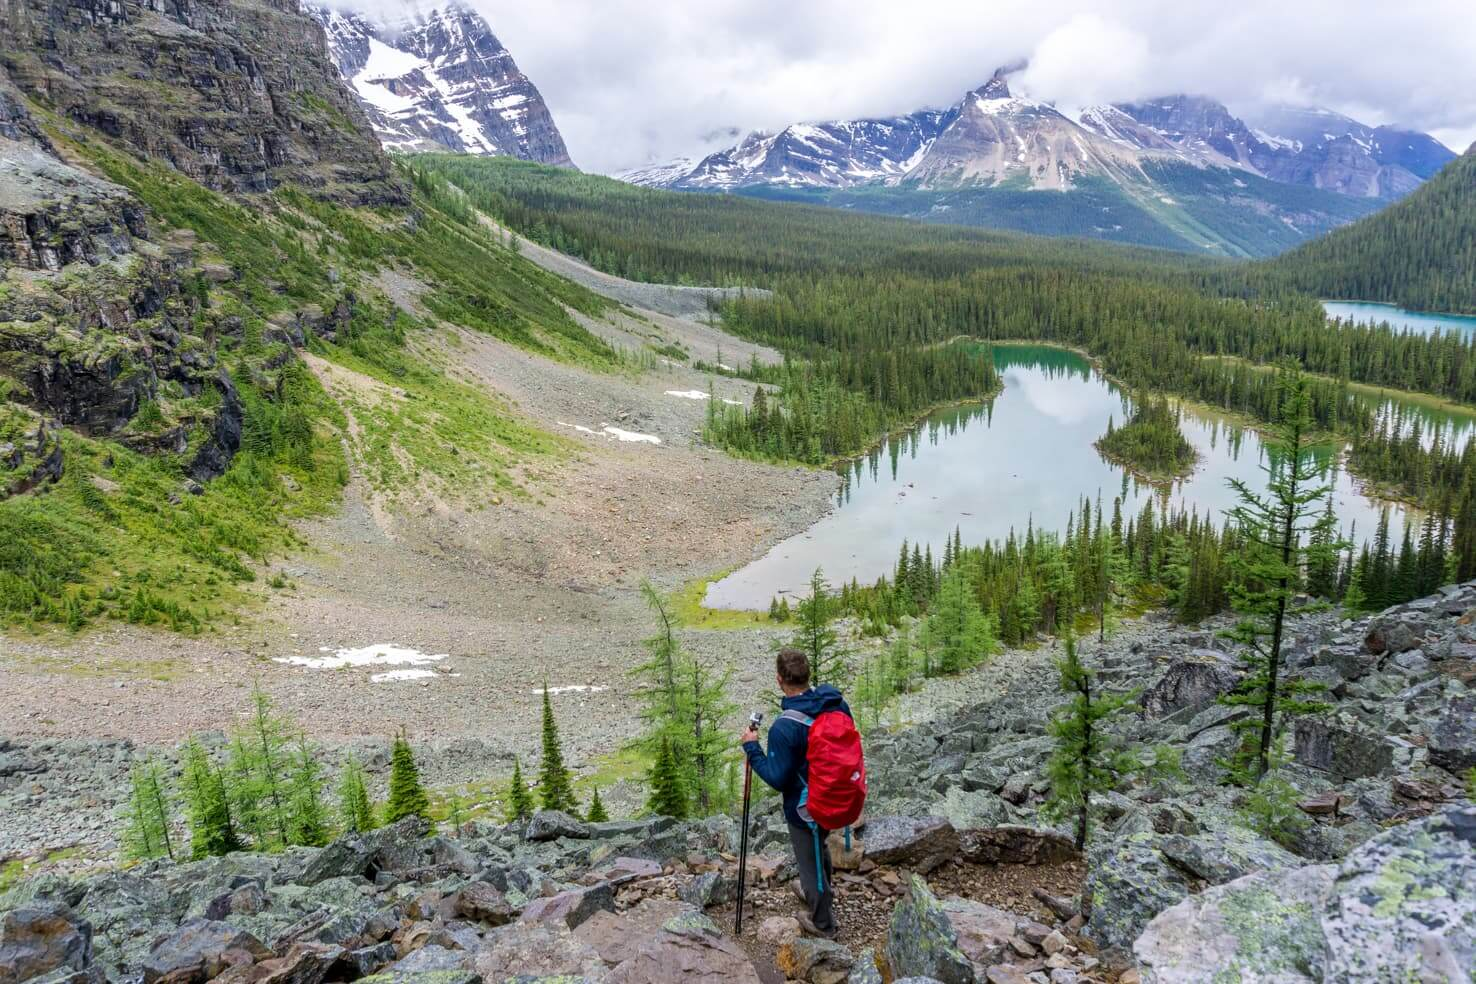 100 best things to do in Banff National Park, Canada - Stay overnight at magical Lake O'Hara